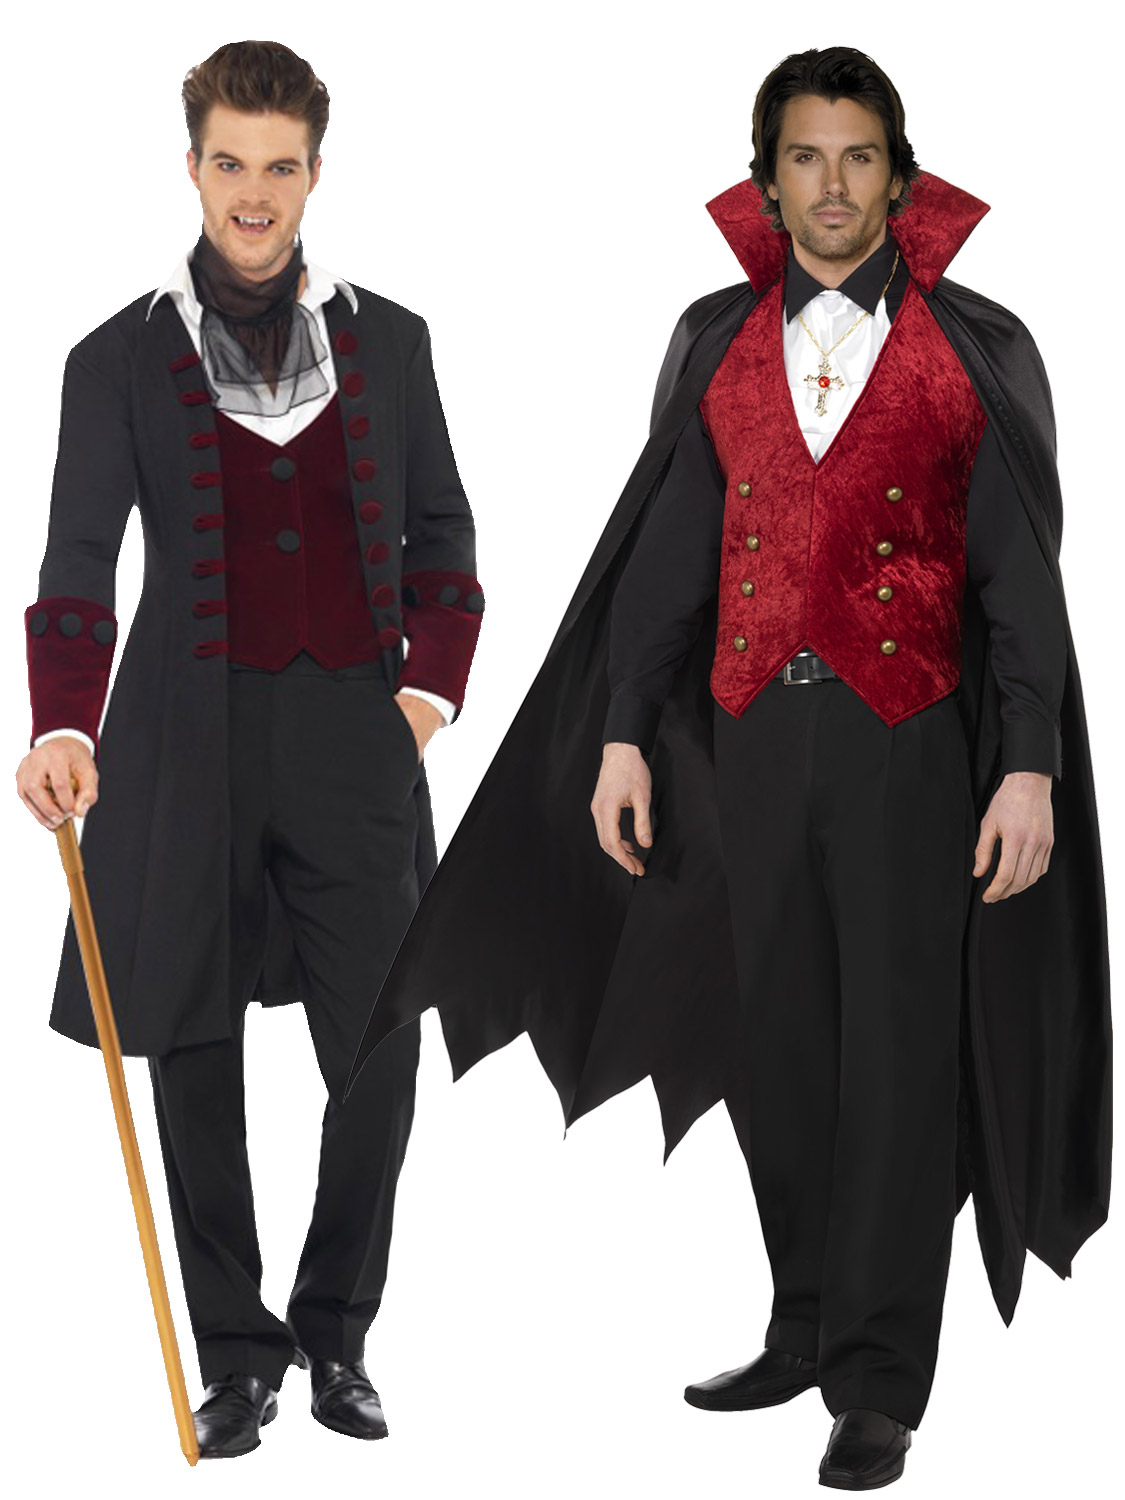 9cf9f96997f Details about Adult Mens Deluxe Count Dracula Vampire Costume Halloween  Fancy Dress Gothic